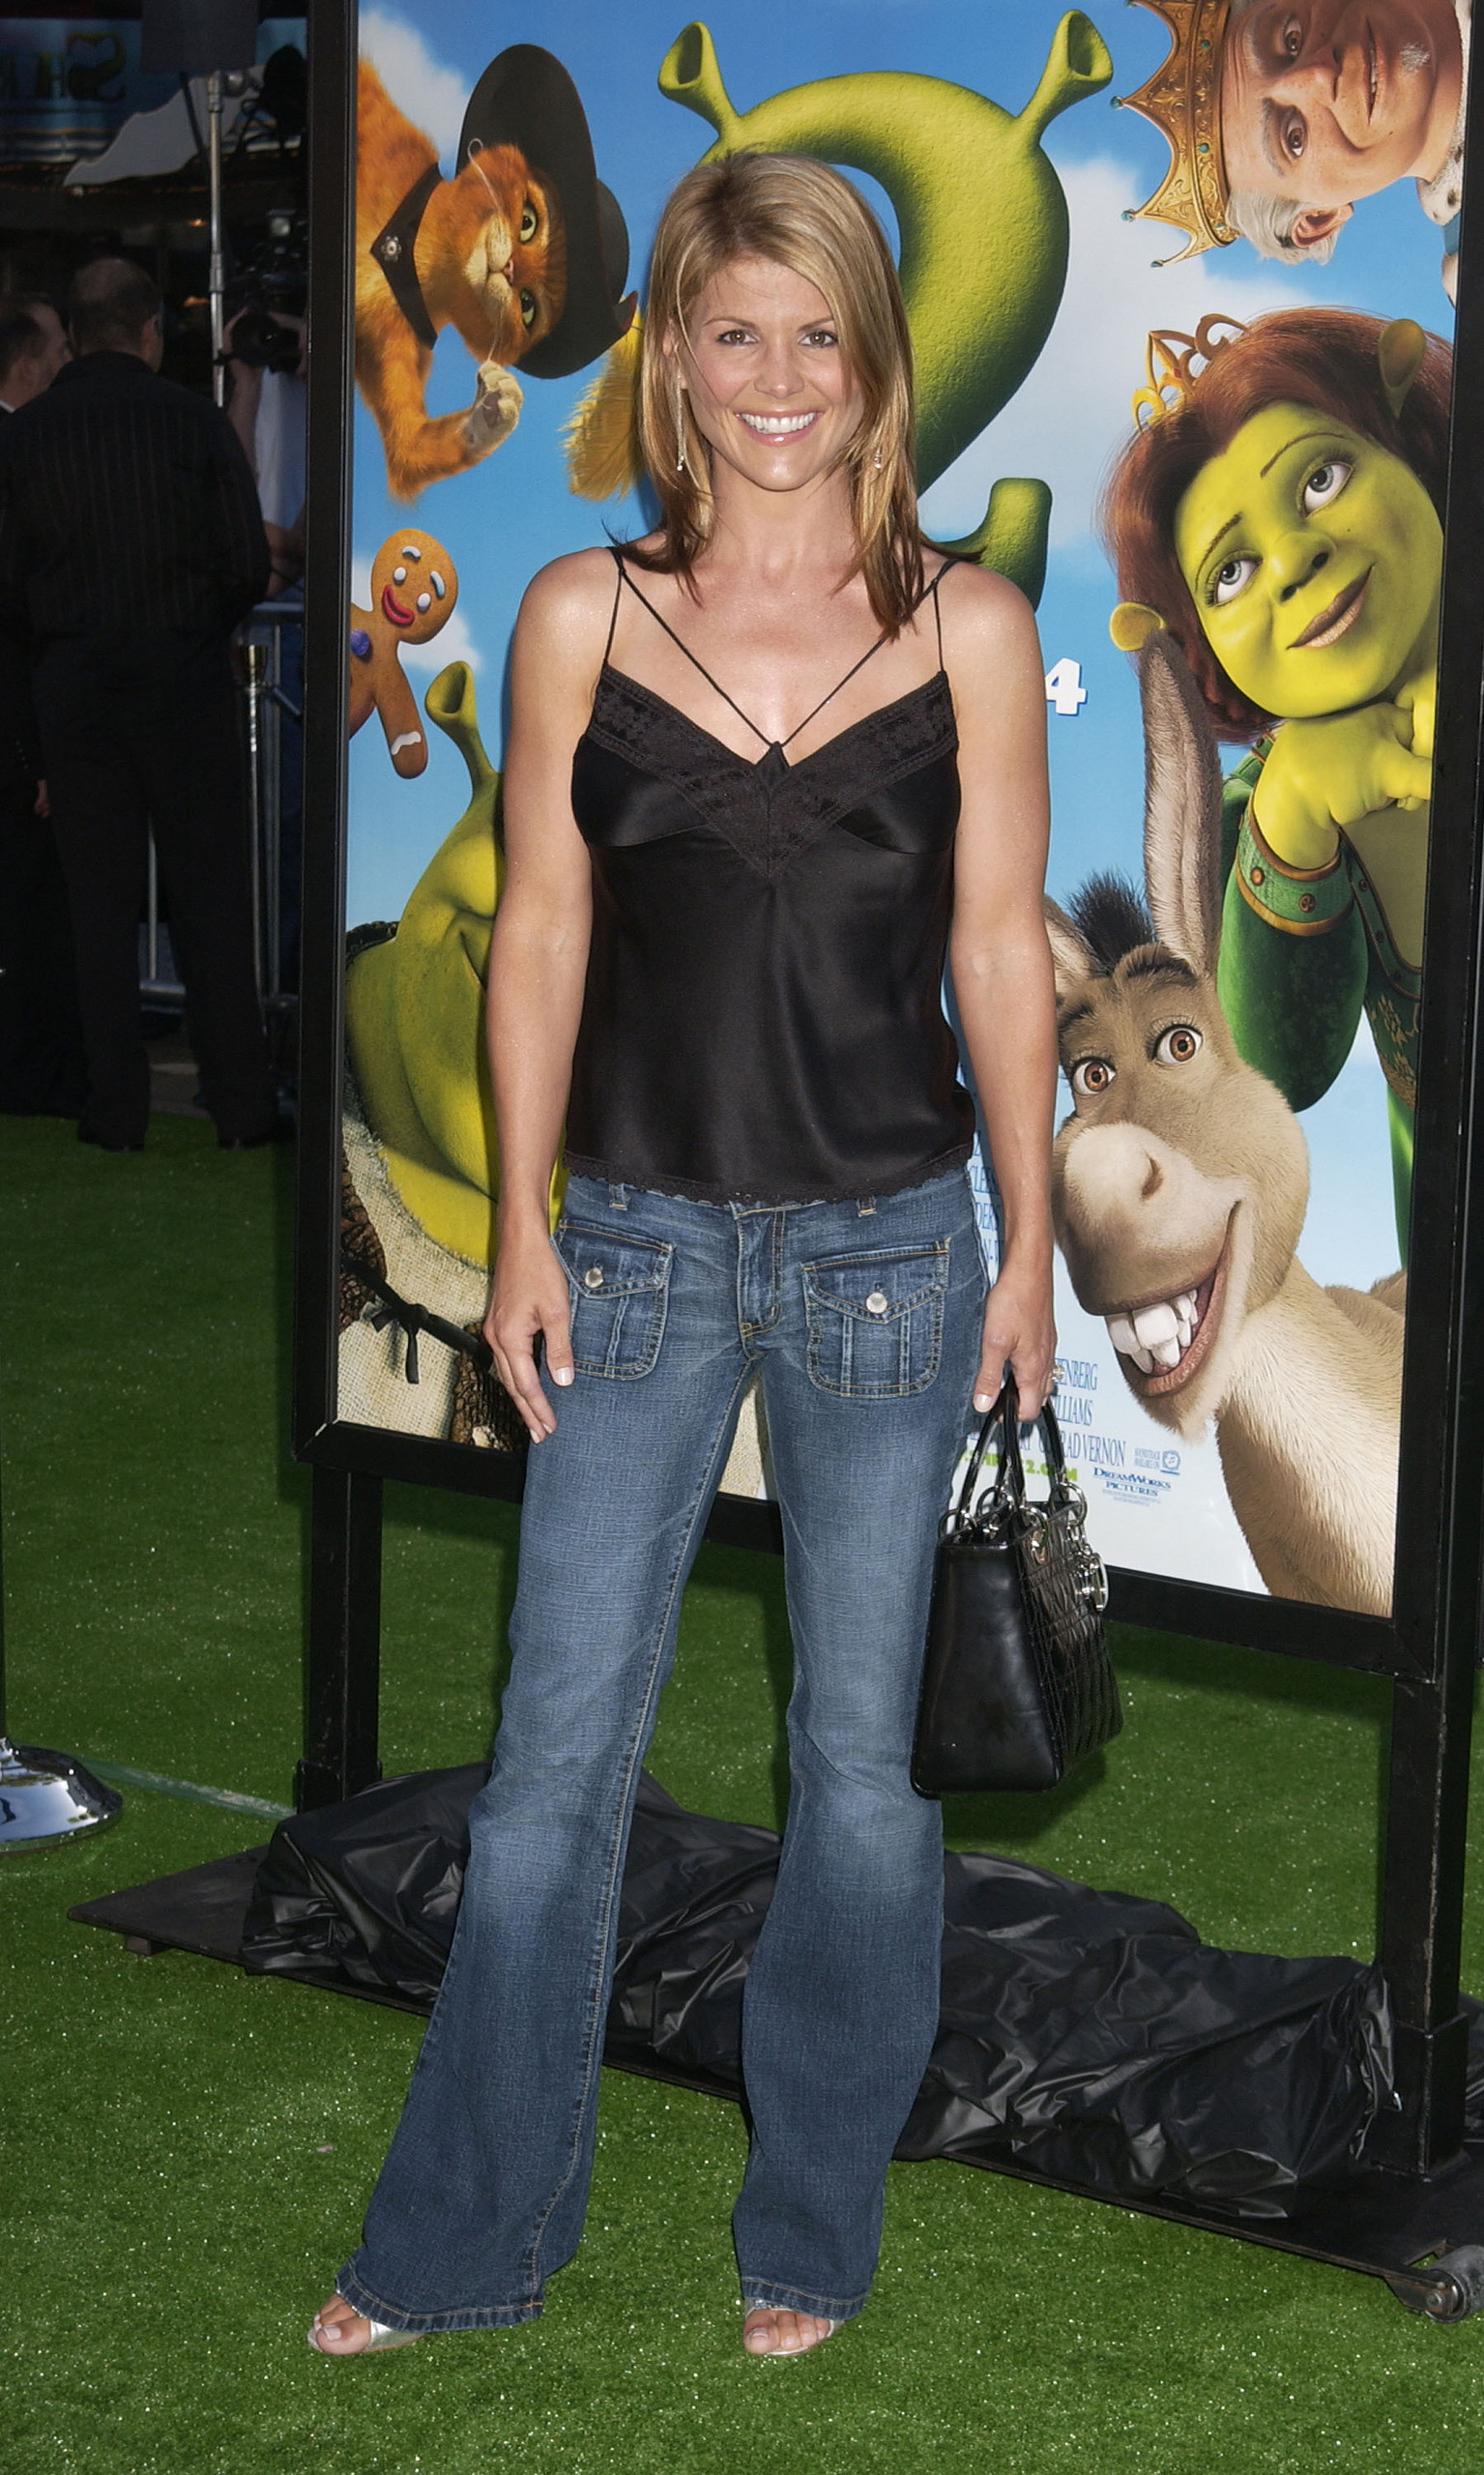 Res: 1535x2560, Lori Loughlin images Shrek 2 Premiere HD wallpaper and background photos